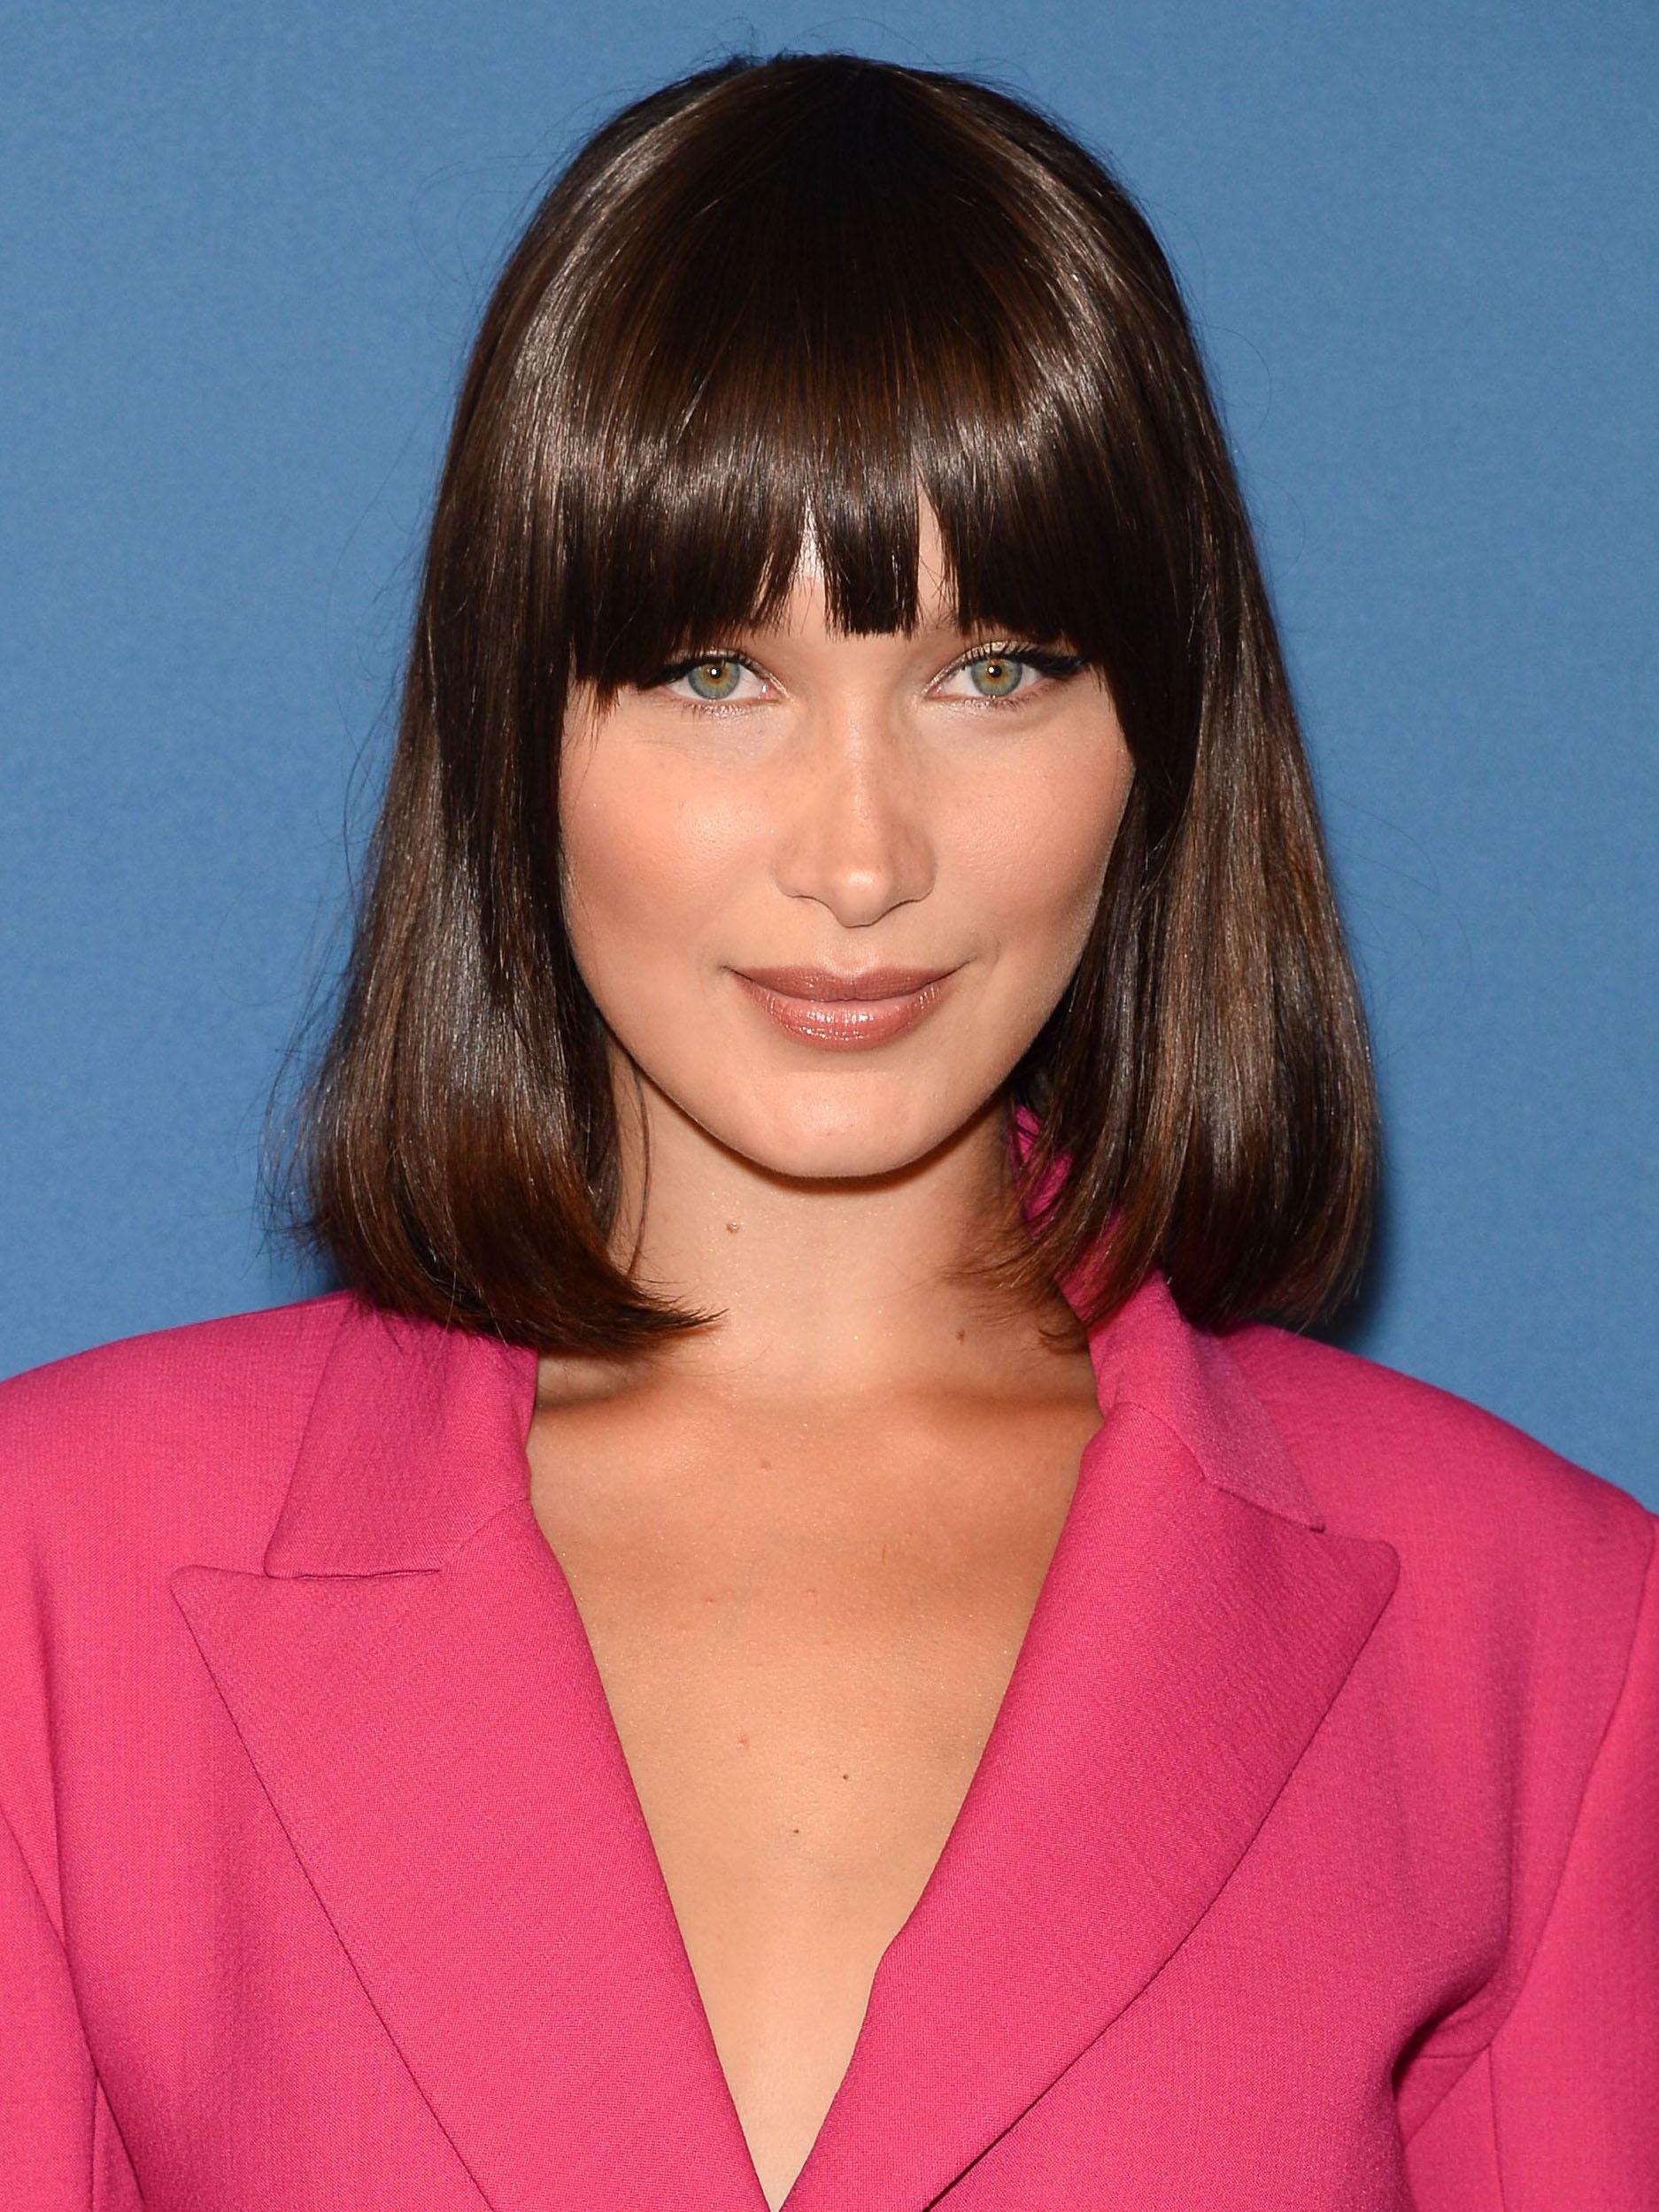 bella-hadid-attends-the-2017-cfda-fashion-awards-in-new-york